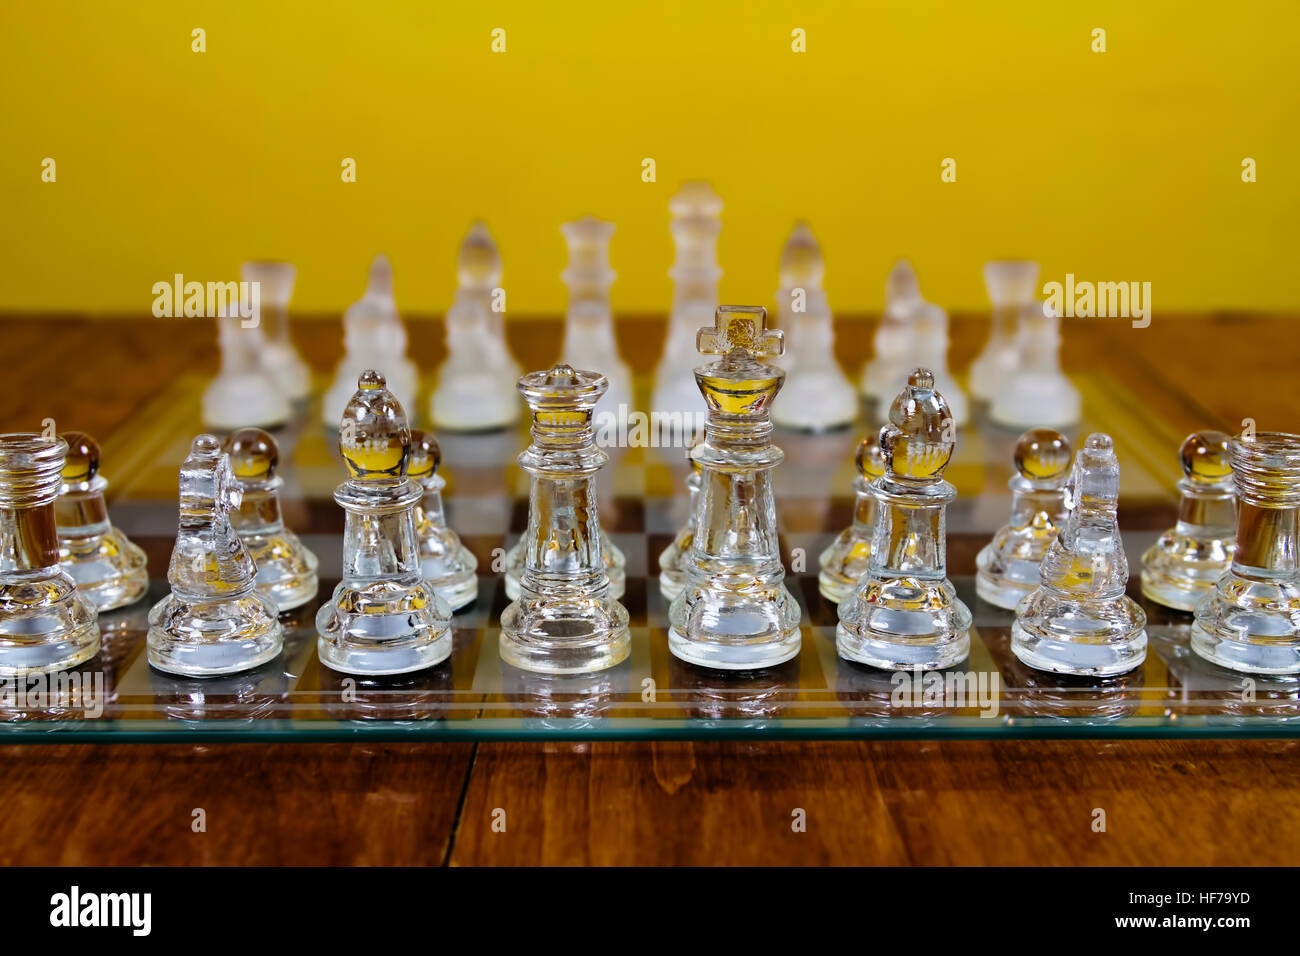 Glass Chess Pieces Set Up On Board In Starting Position Sitting On Wood Table With Yellow Wall Stock Photo